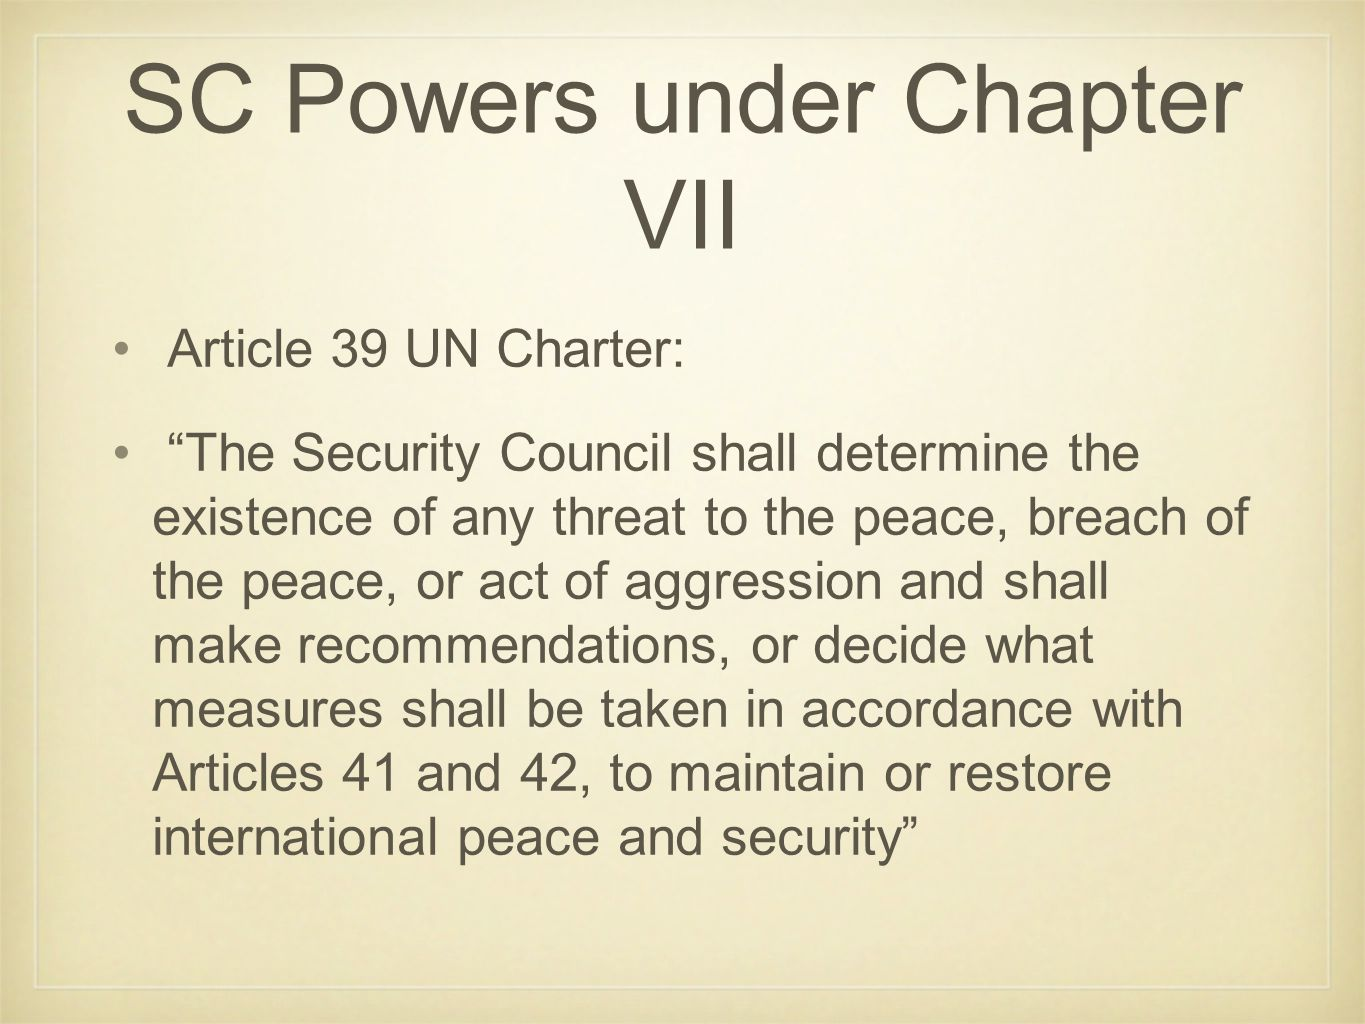 Article 39 UN Charter: The Security Council shall determine the existence of any threat to the peace, breach of the peace, or act of aggression and shall make recommendations, or decide what measures shall be taken in accordance with Articles 41 and 42, to maintain or restore international peace and security SC Powers under Chapter VII